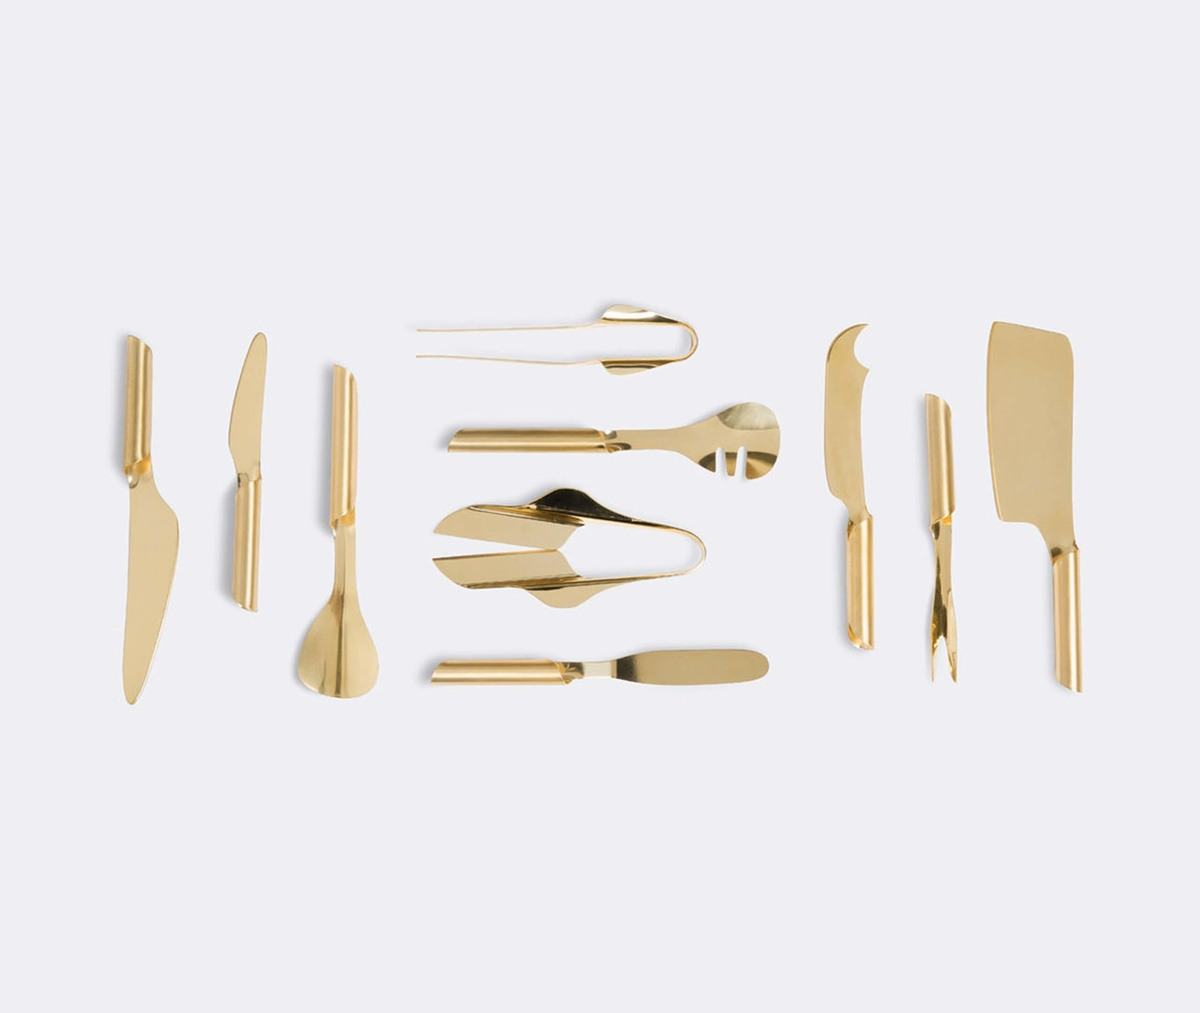 Tuju is a collection of gold-finished stainless steel tools. The collection is a collaboration between Jahara Studio and chef Ivan Ralston for Wallpaper* Handmade 2015. Image © 2015 WallpaperSTORE*.